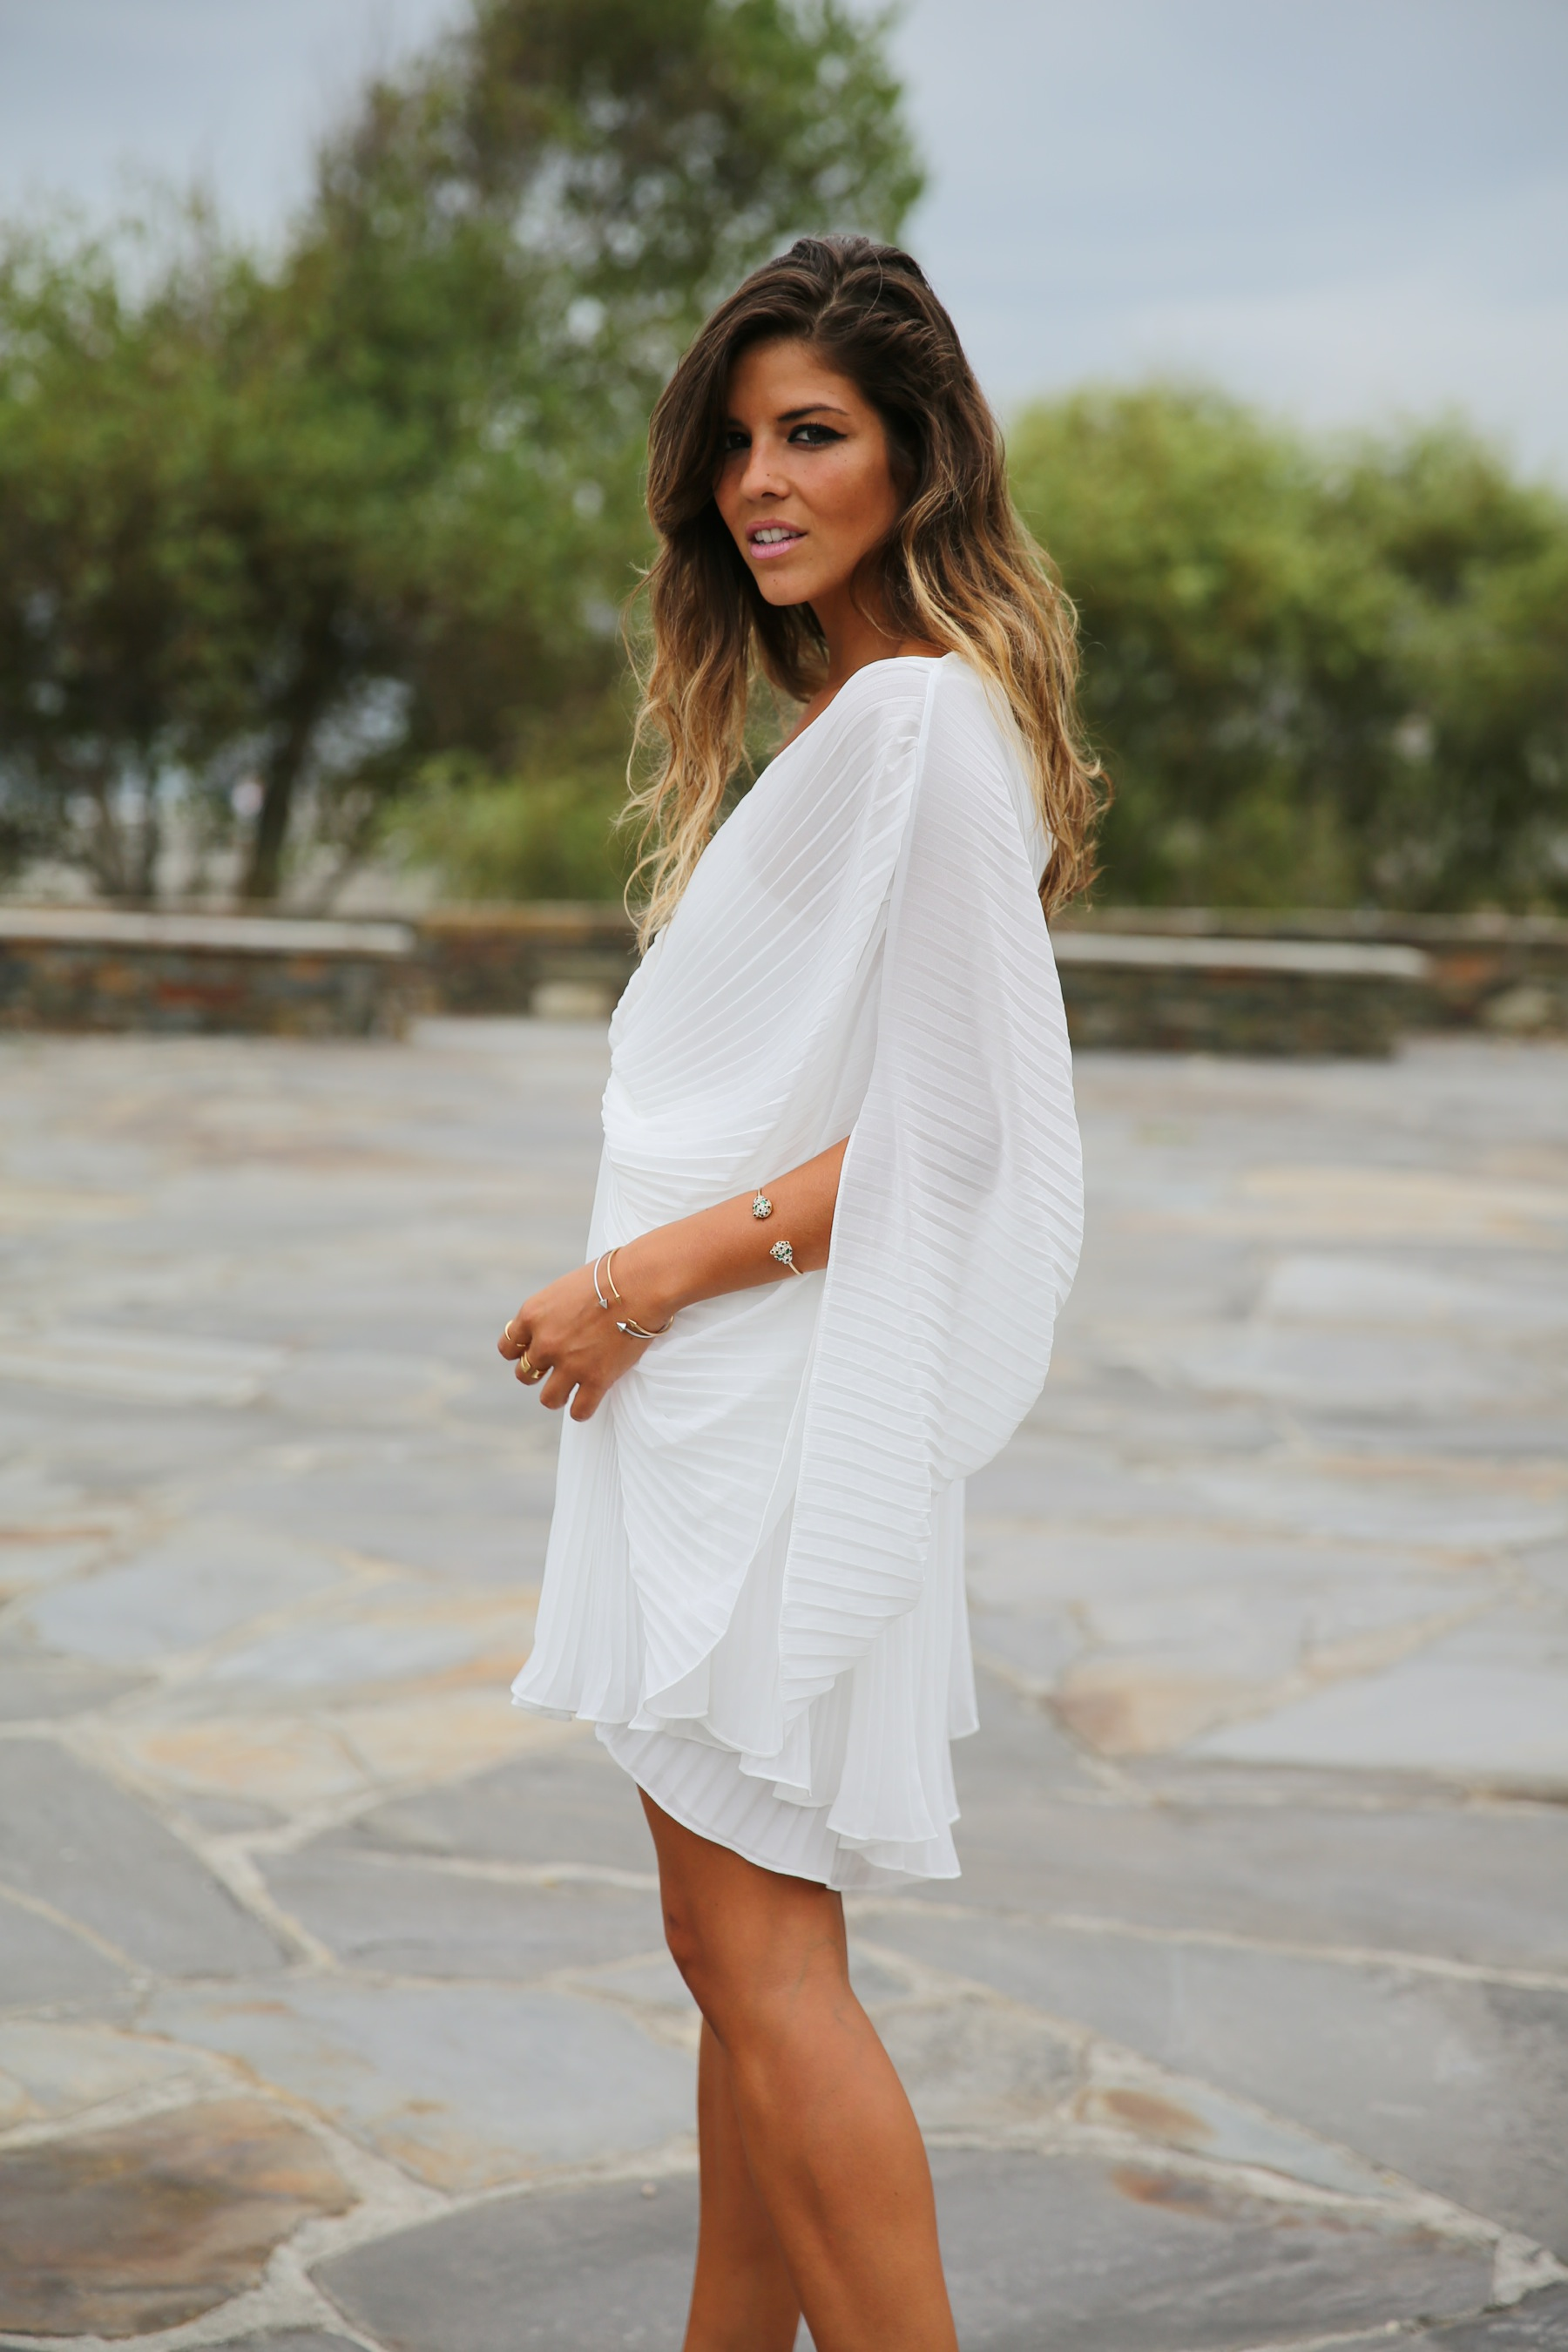 trendy_taste-look-outfit-street_style-fashion_spain-moda_españa-blog-blogger-vestido_blanco-white_dress-müic-jewels-joyas-leo_sandals-sandalias_leopardo-clutch_pedreria-3